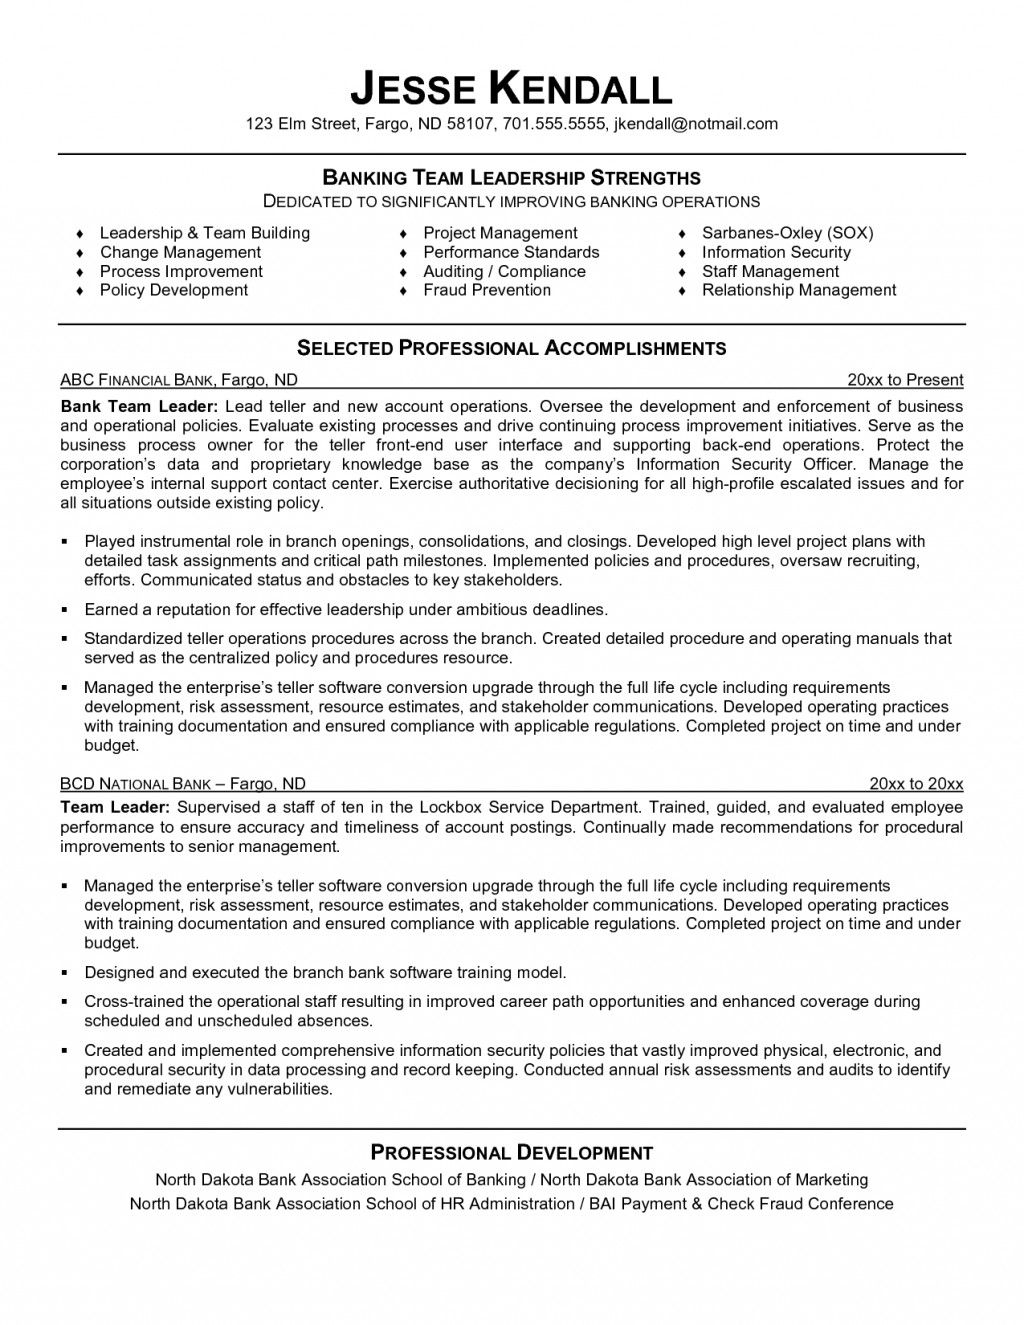 resume examples leadership skills templates bank of on sap fico consultant years Resume Examples Of Leadership Skills On Resume